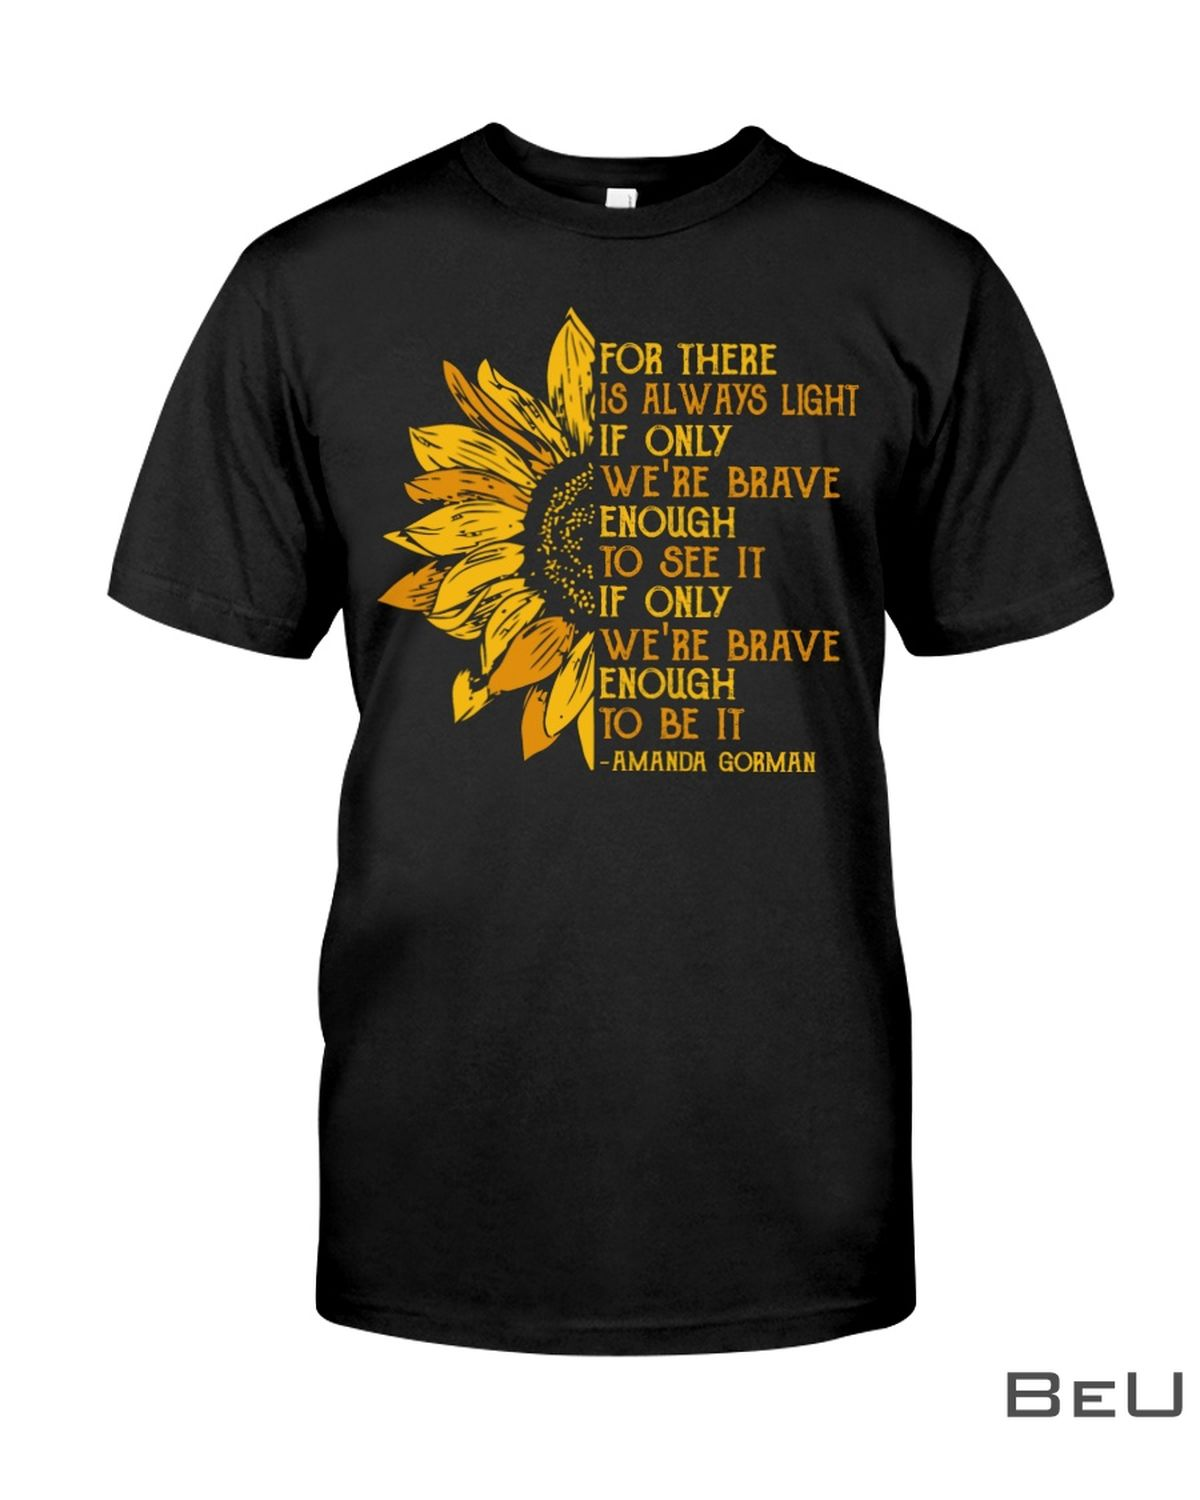 Amanda Gorman Sunflower For There Is Always Light If Only We're Brave Enough To See It Shirt